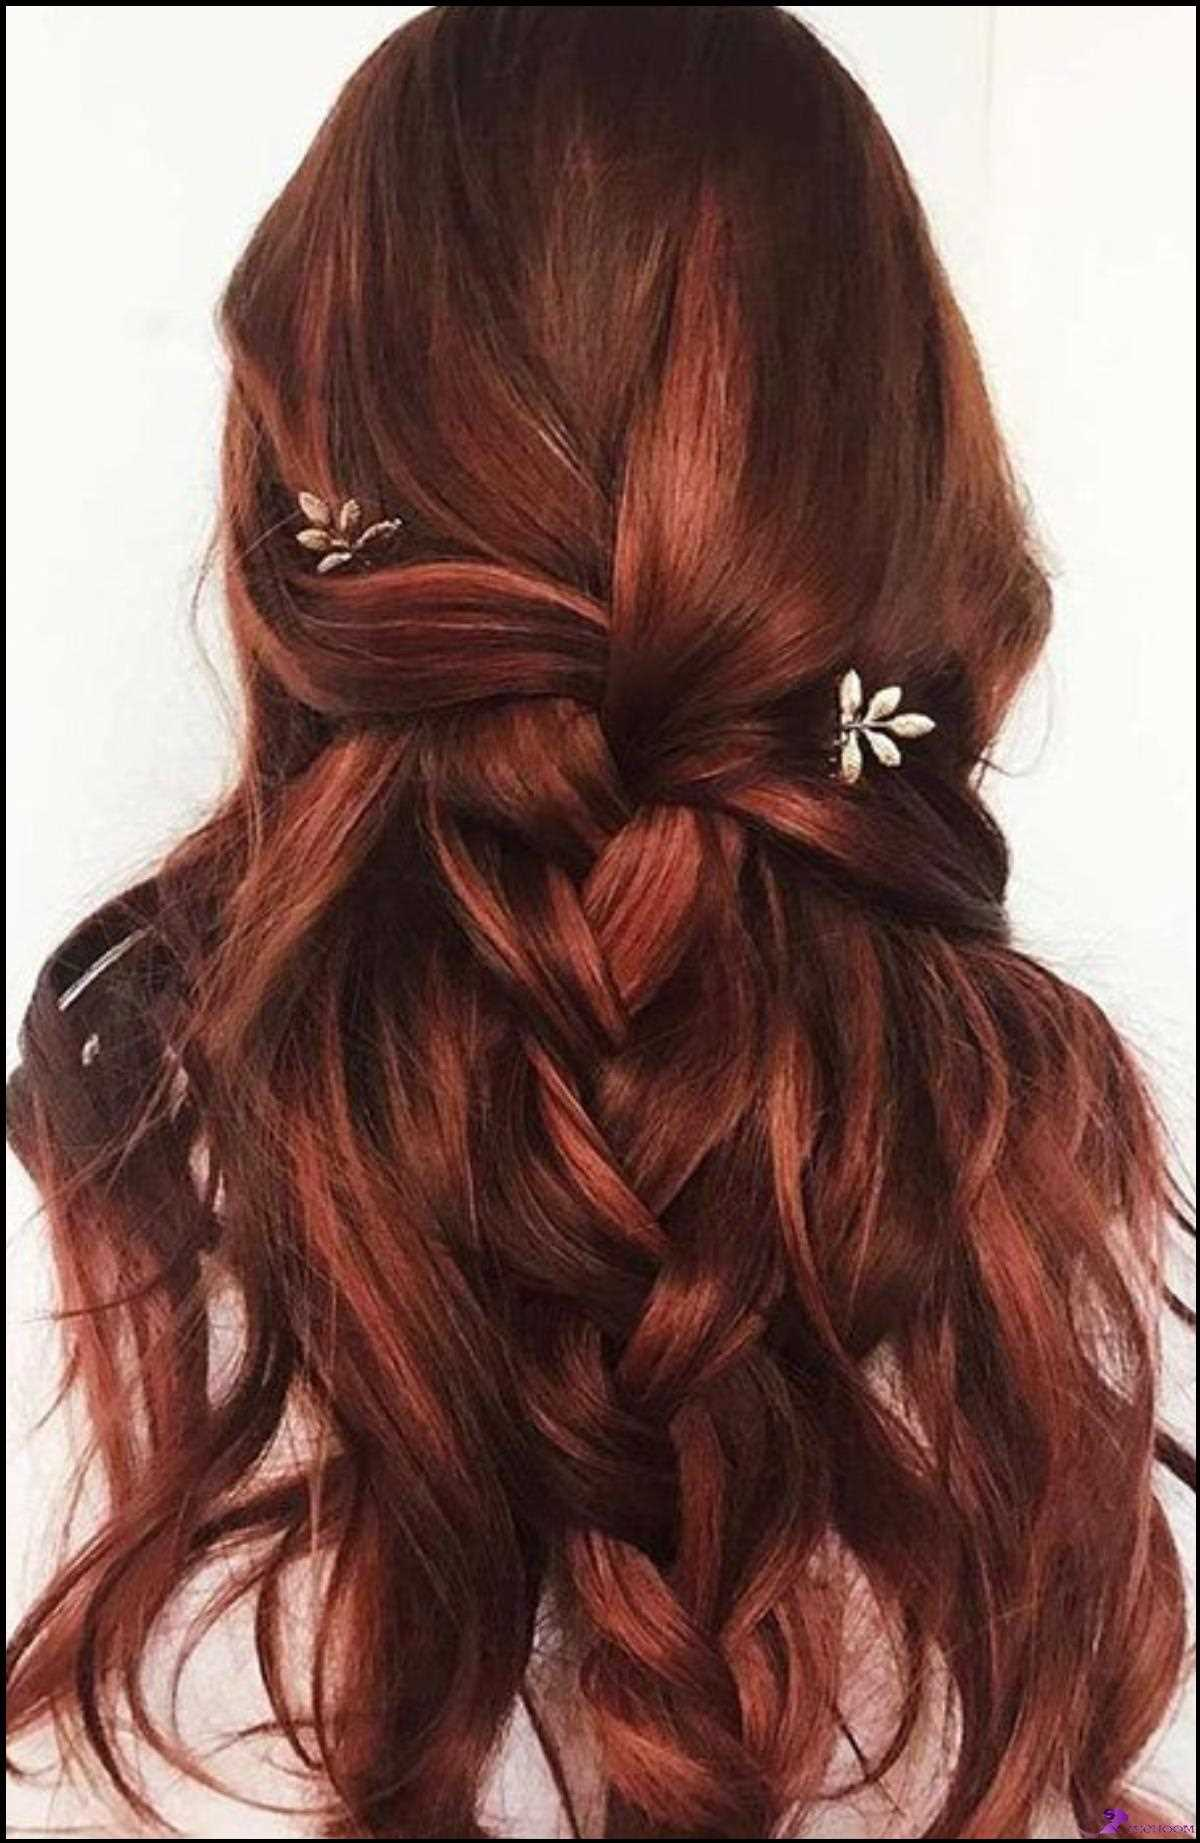 Fettes rotes Haar